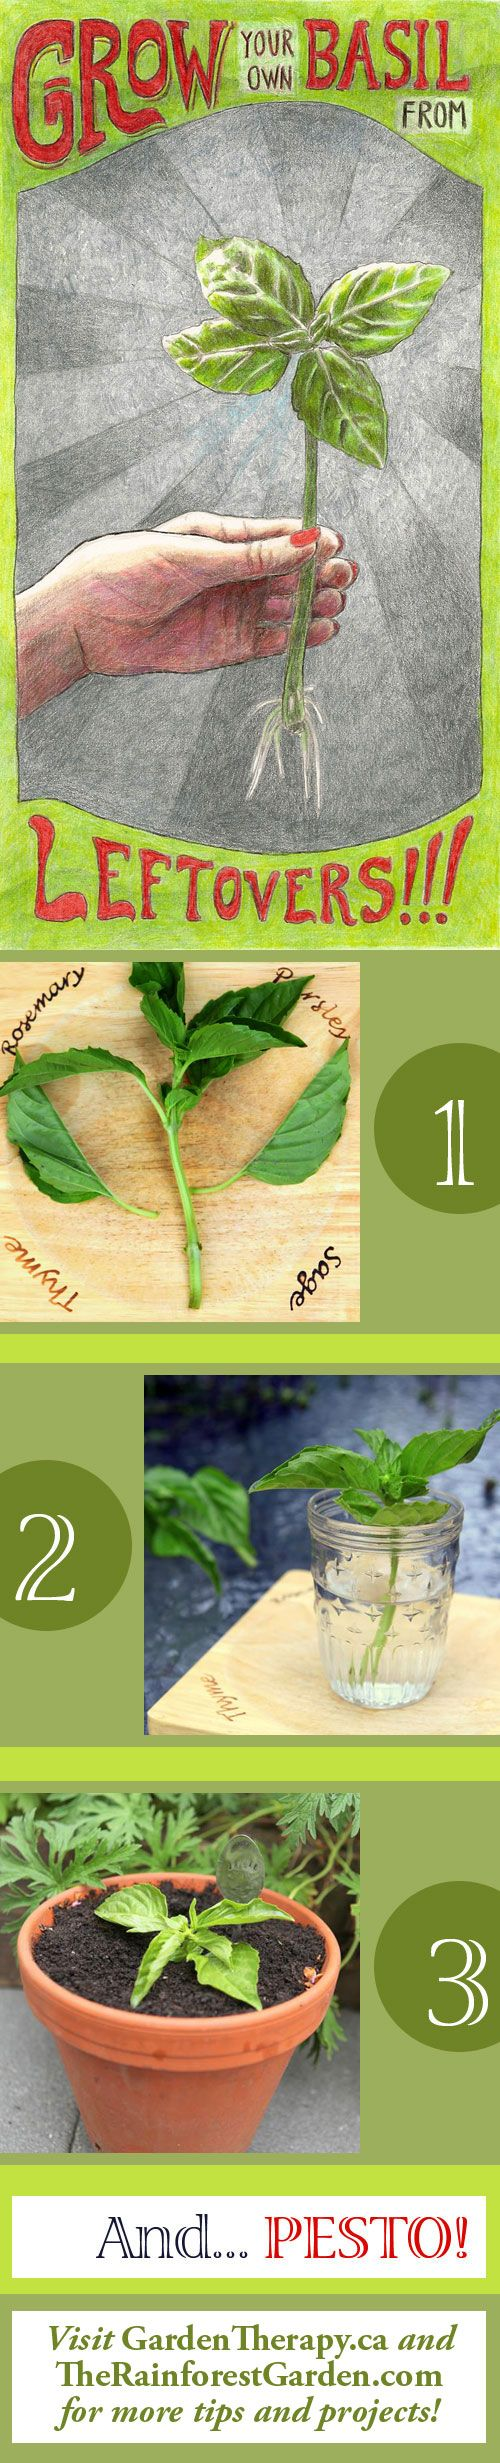 How to Grow Basil from Cuttings -j.